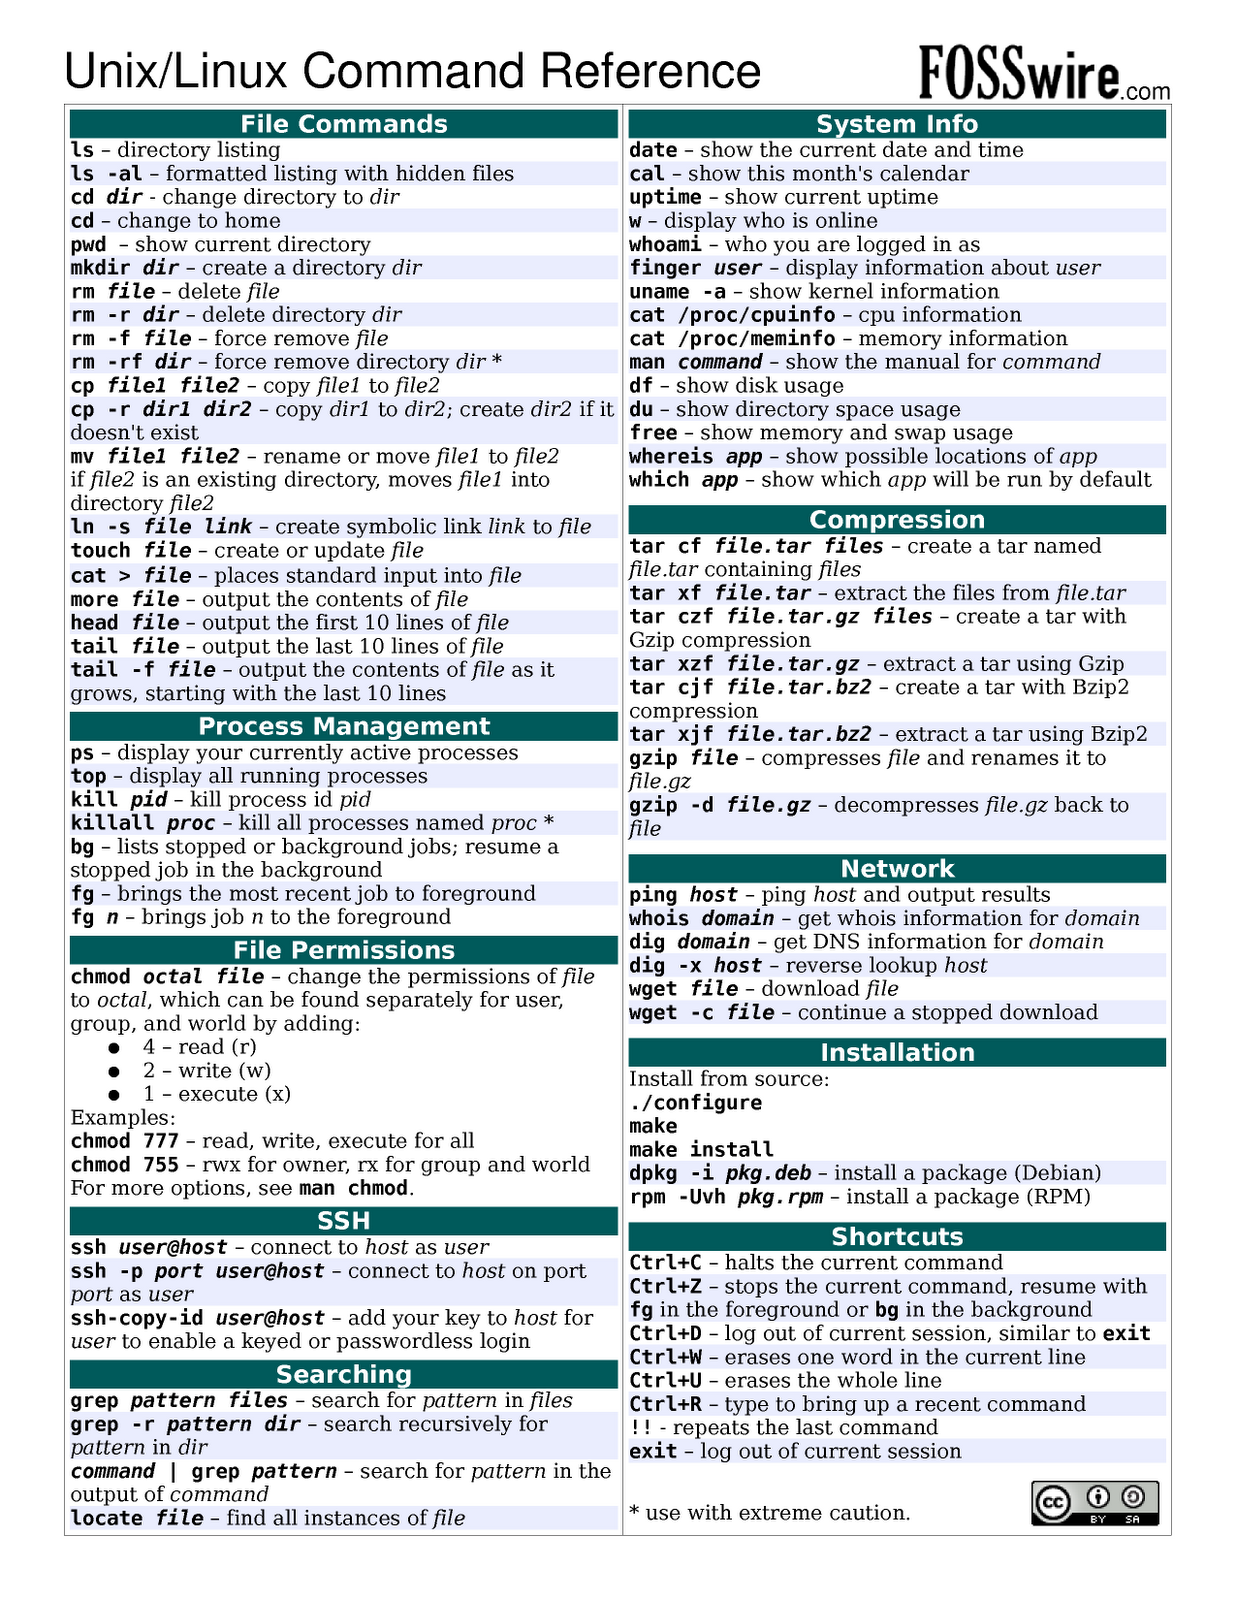 Unix/Linux Command Reference - Cheat sheet - Tips4ever